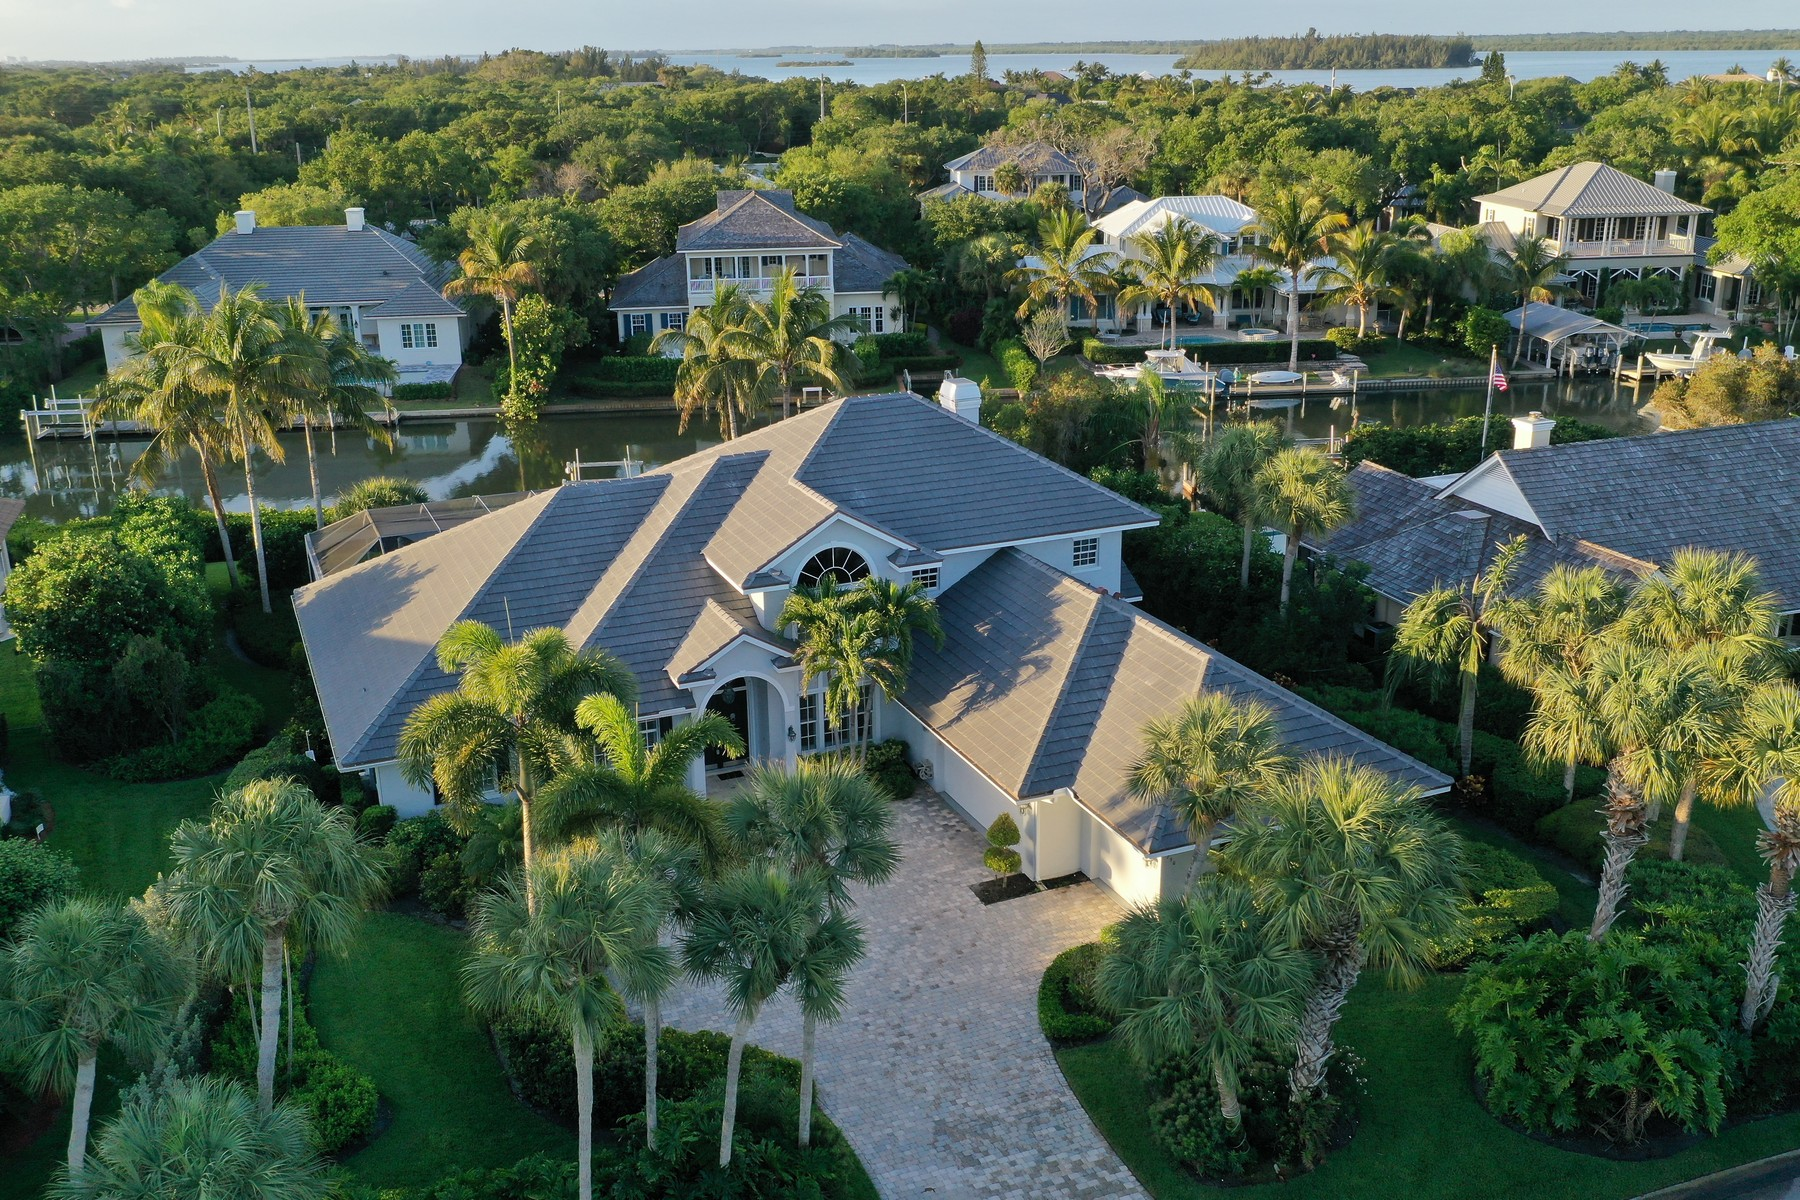 Single Family Home for Sale at Riverfront, Pool, Gourmet Kitchen, Three Car Garage 730 Lagoon Rd Vero Beach, Florida 32963 United States